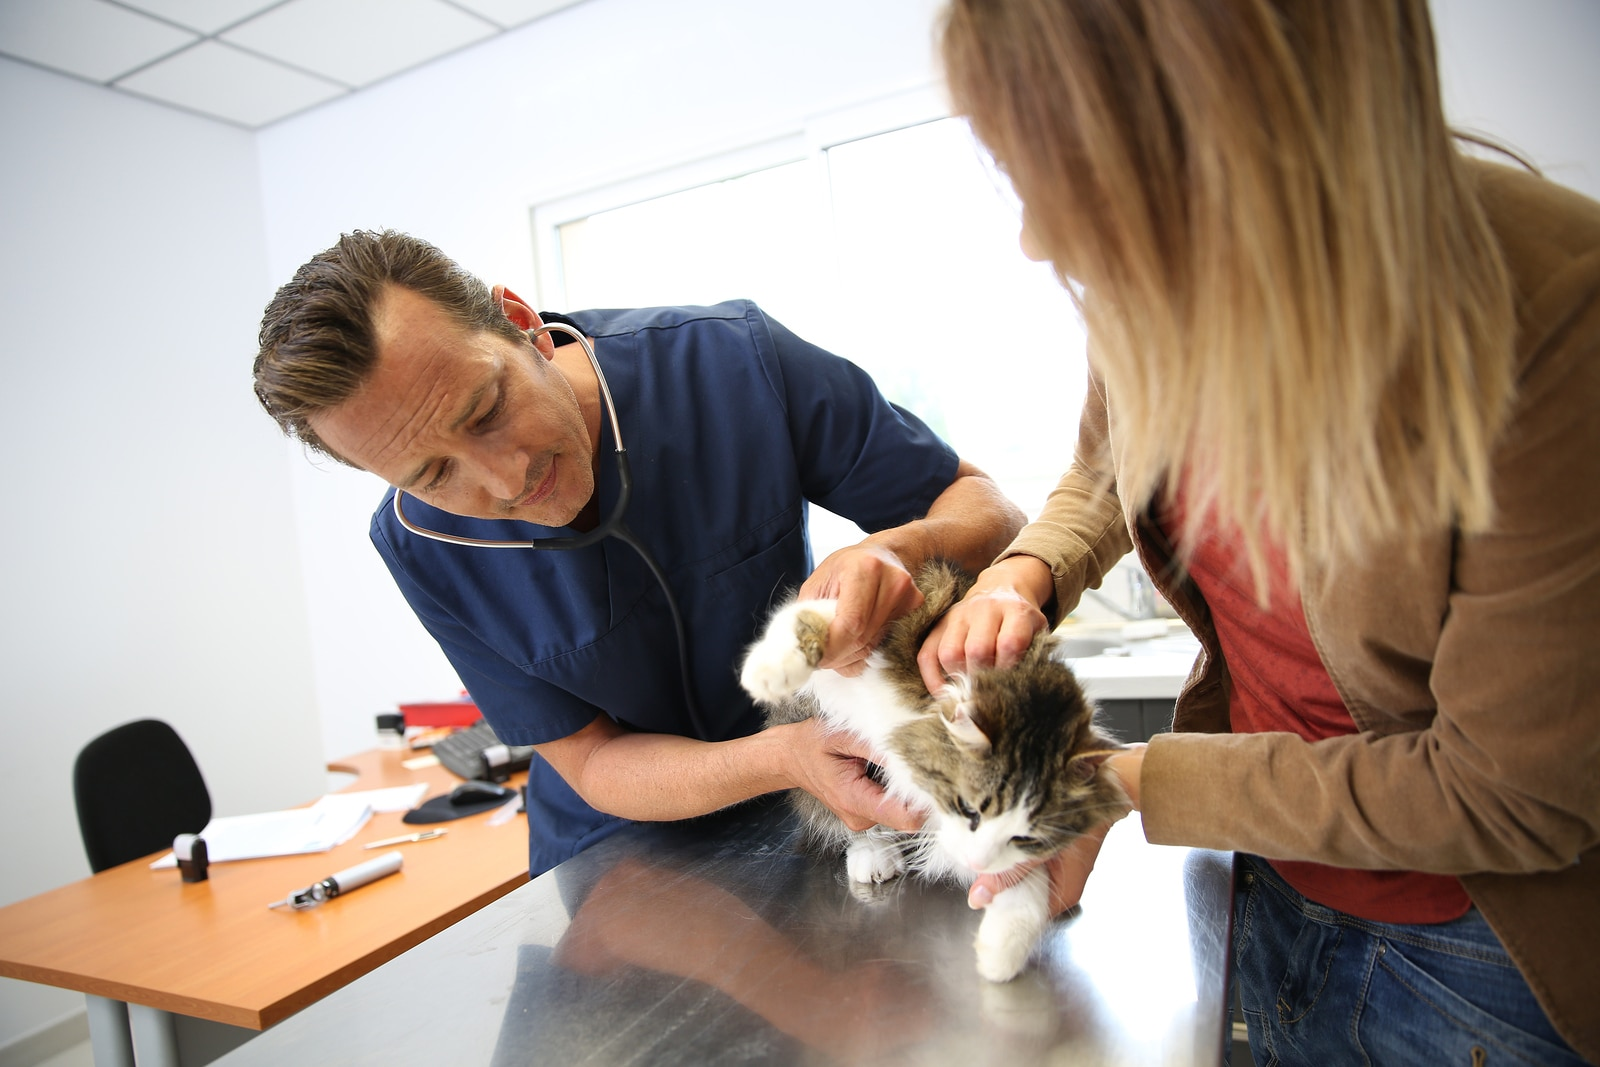 Male veterinarian inspects a cat on a table, while the female owner holds her.